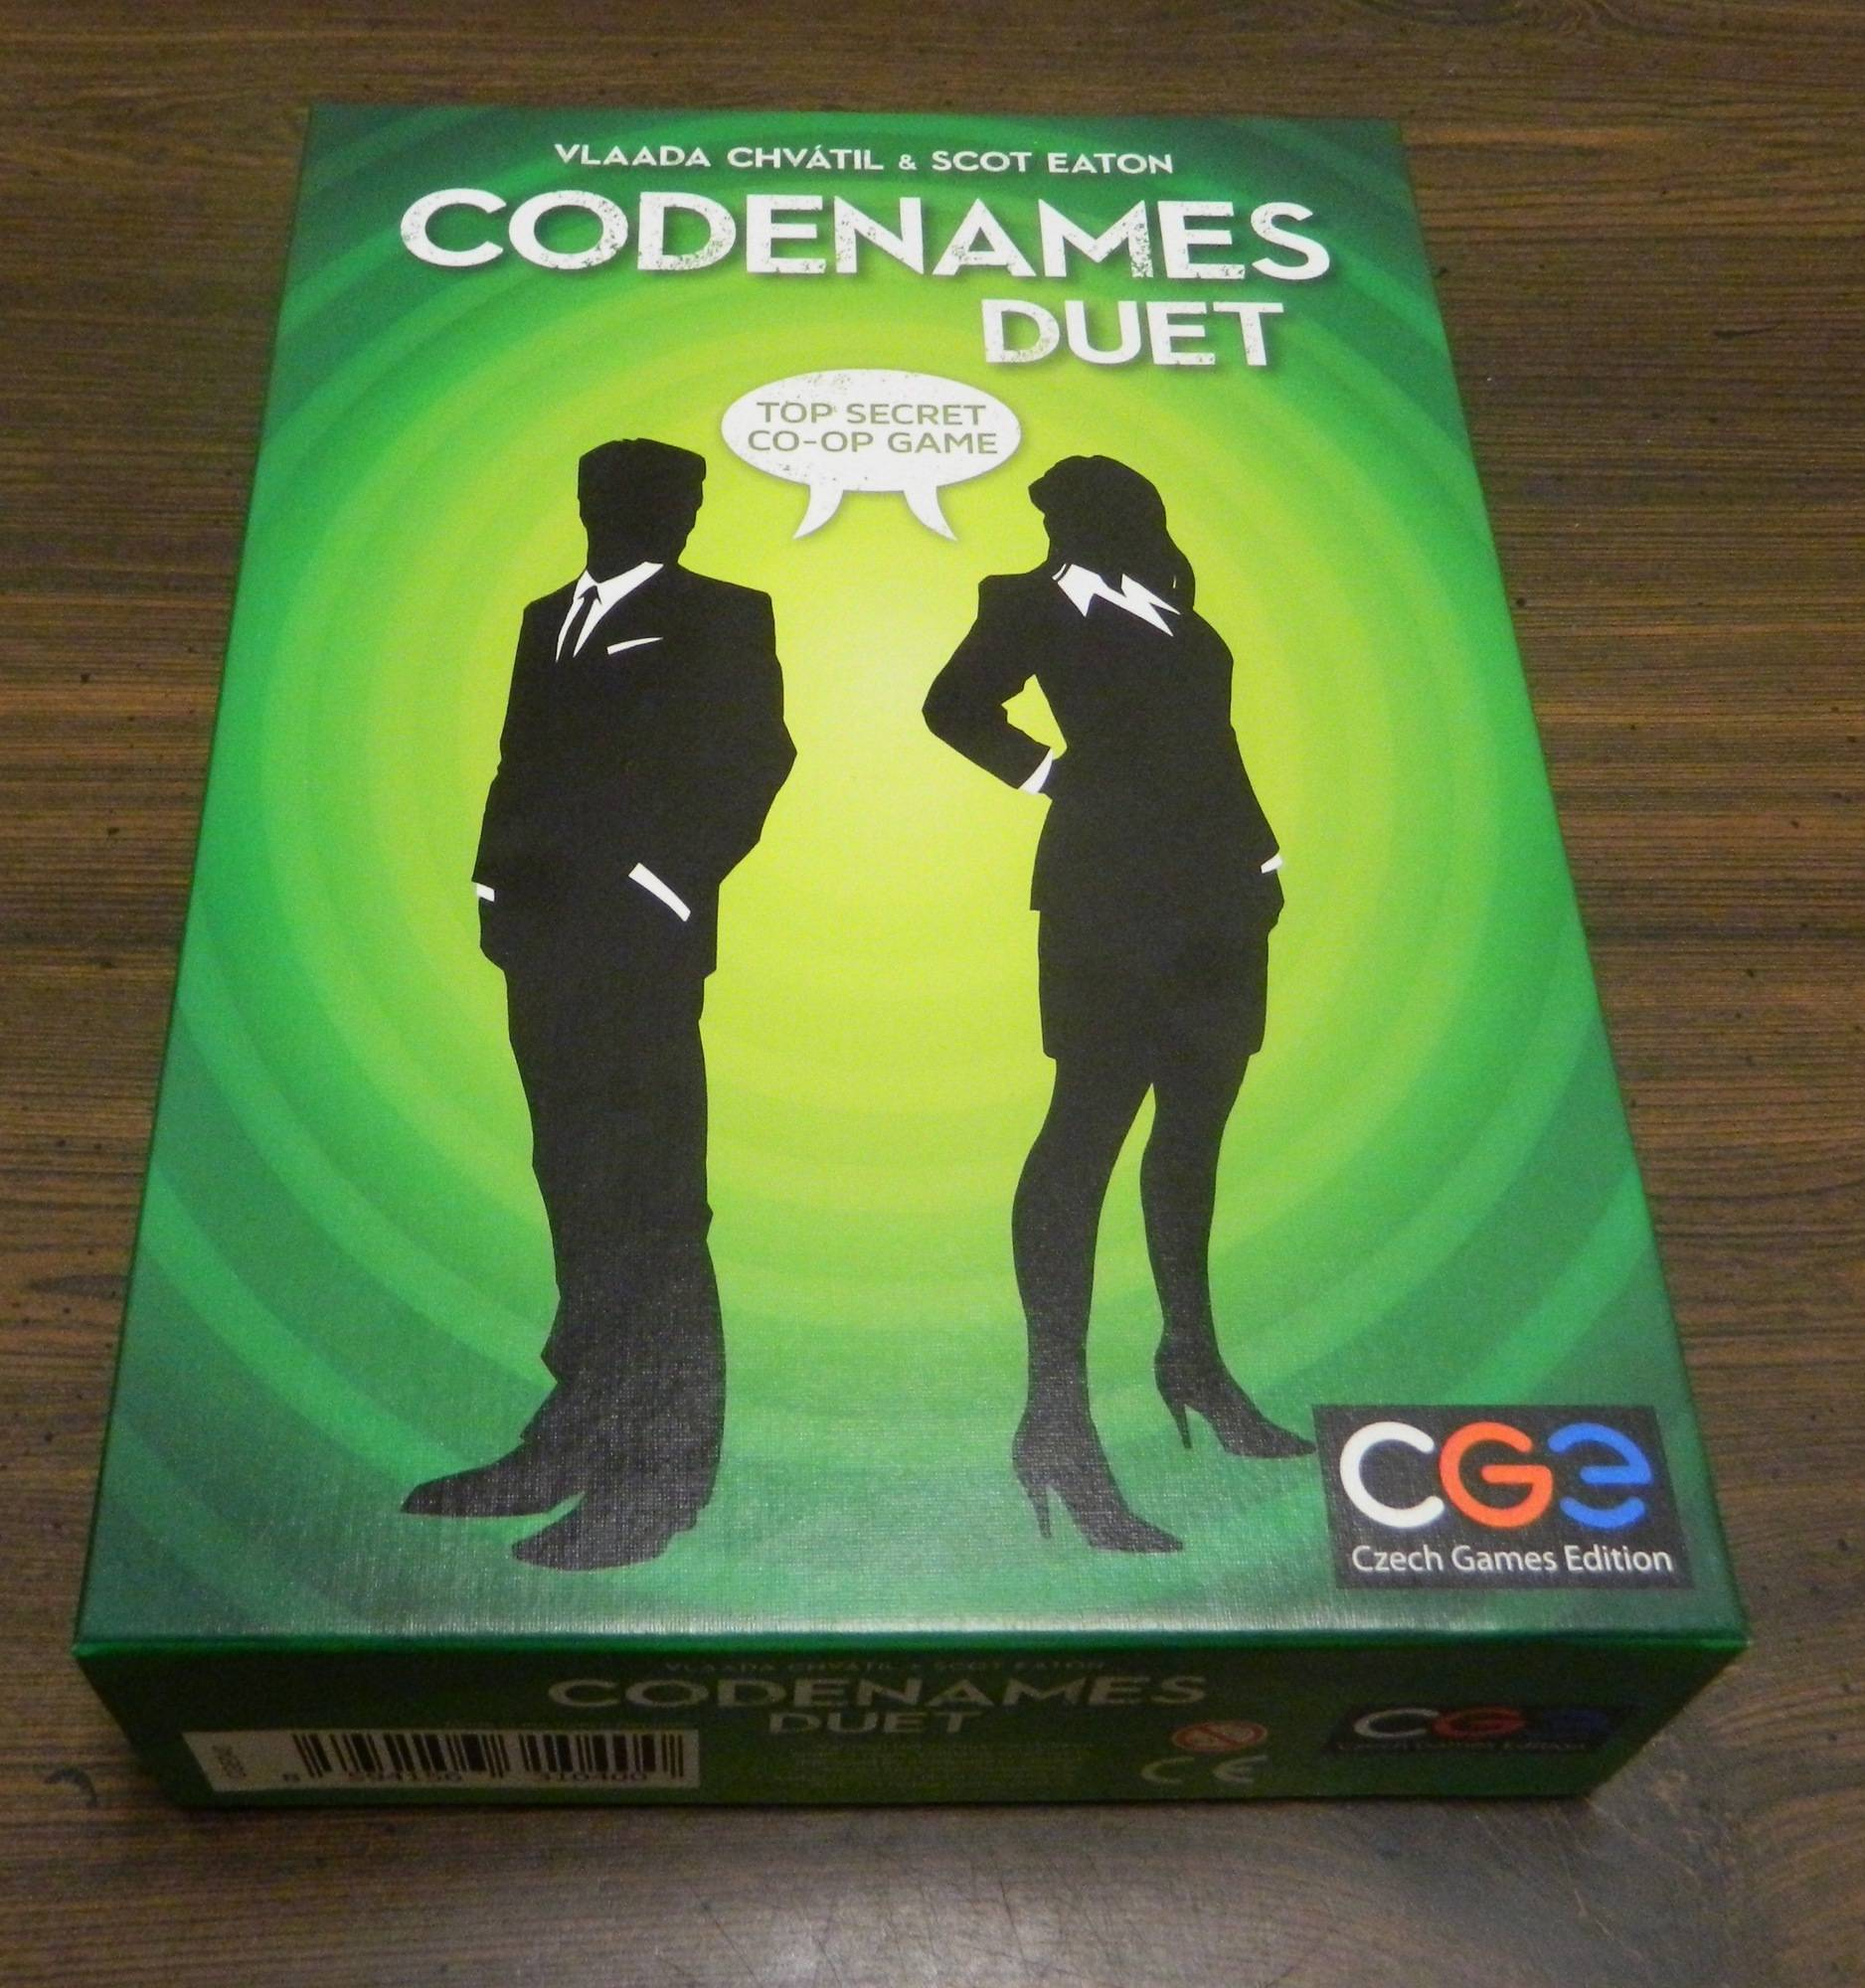 Box for Codenames Duet